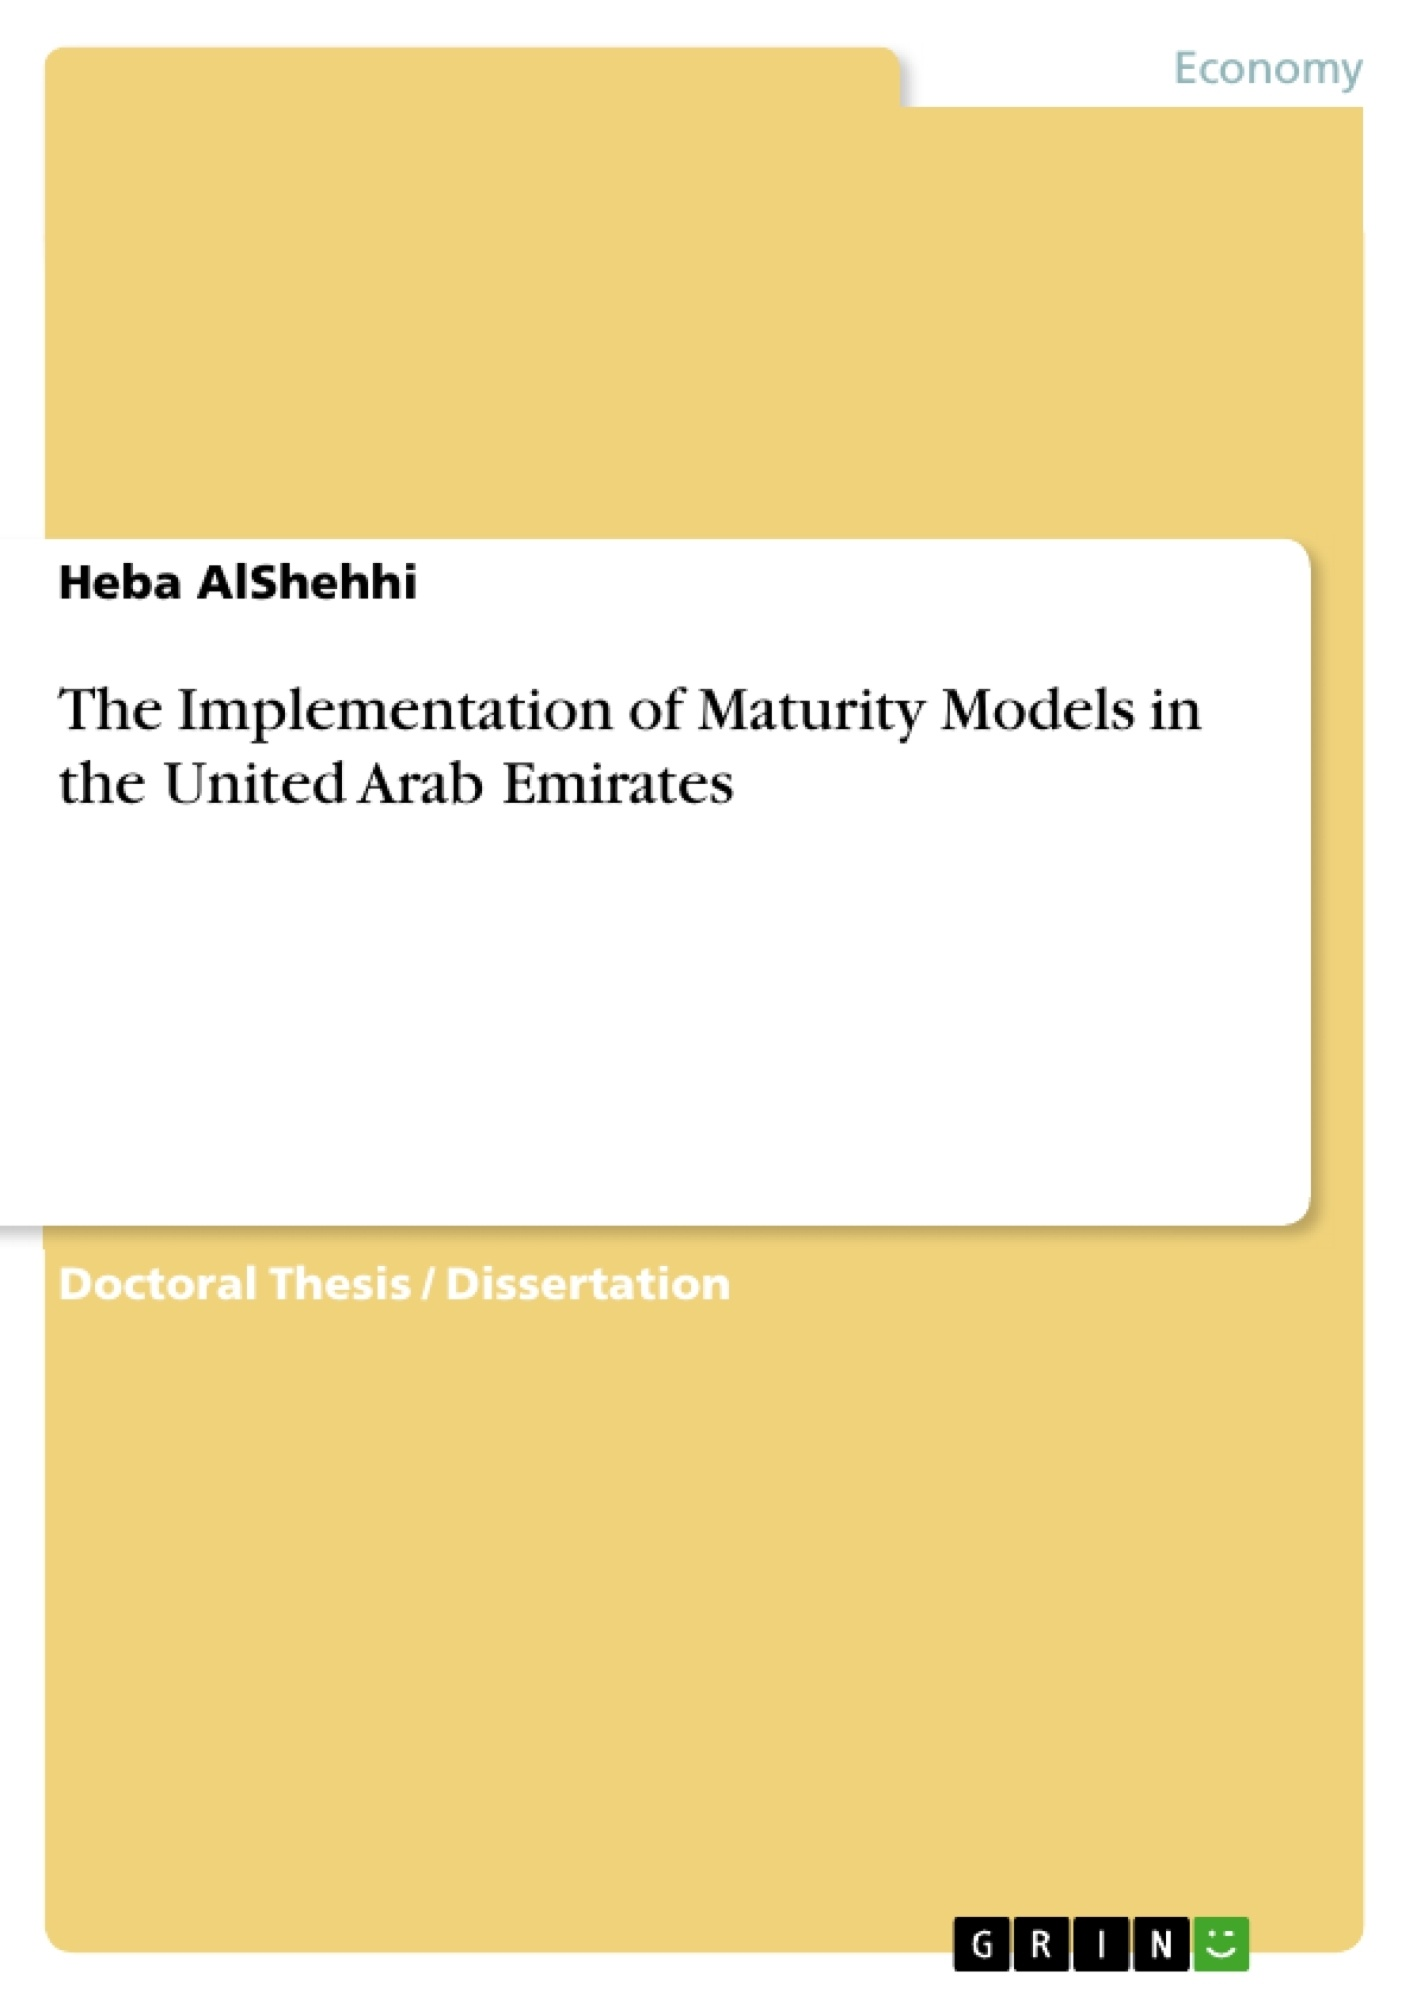 Title: The Implementation of Maturity Models in the United Arab Emirates